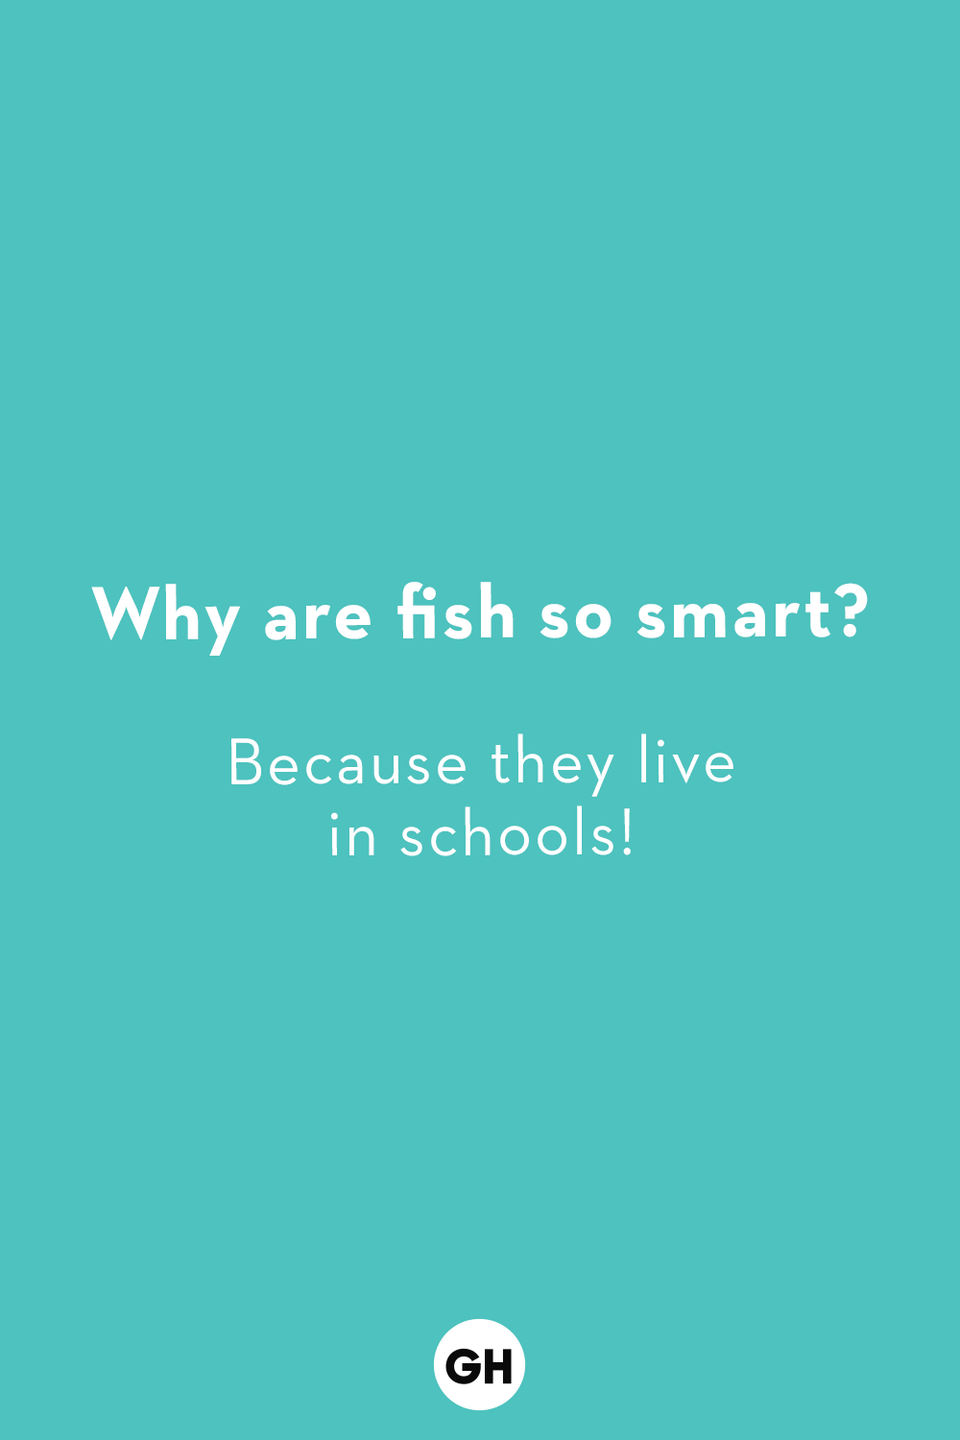 <p>Because they live in schools!</p>